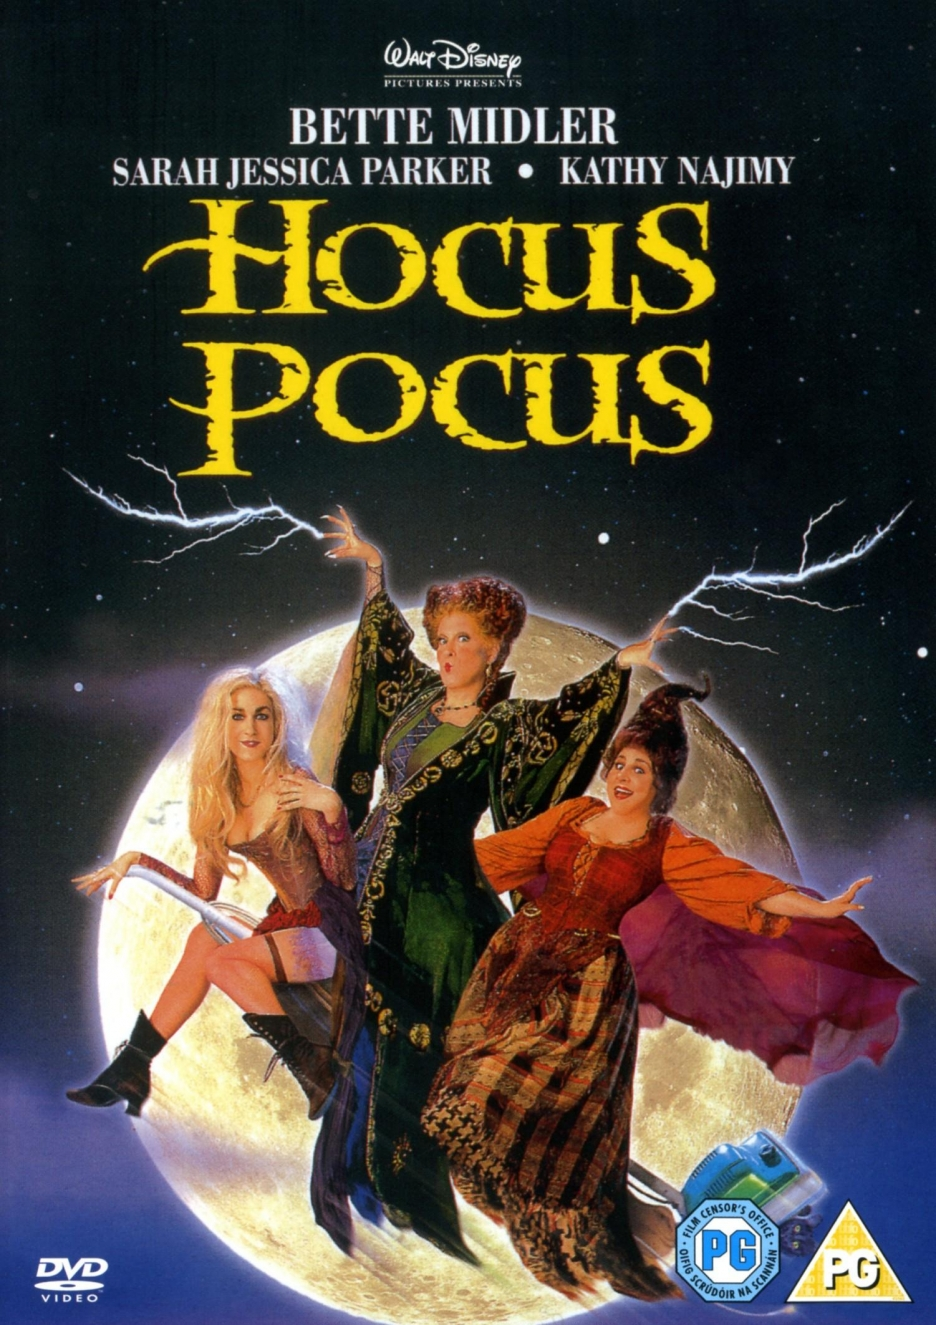 Hocus Pocus 2 Chapter 1: 20 years later, a hocus pocus ...